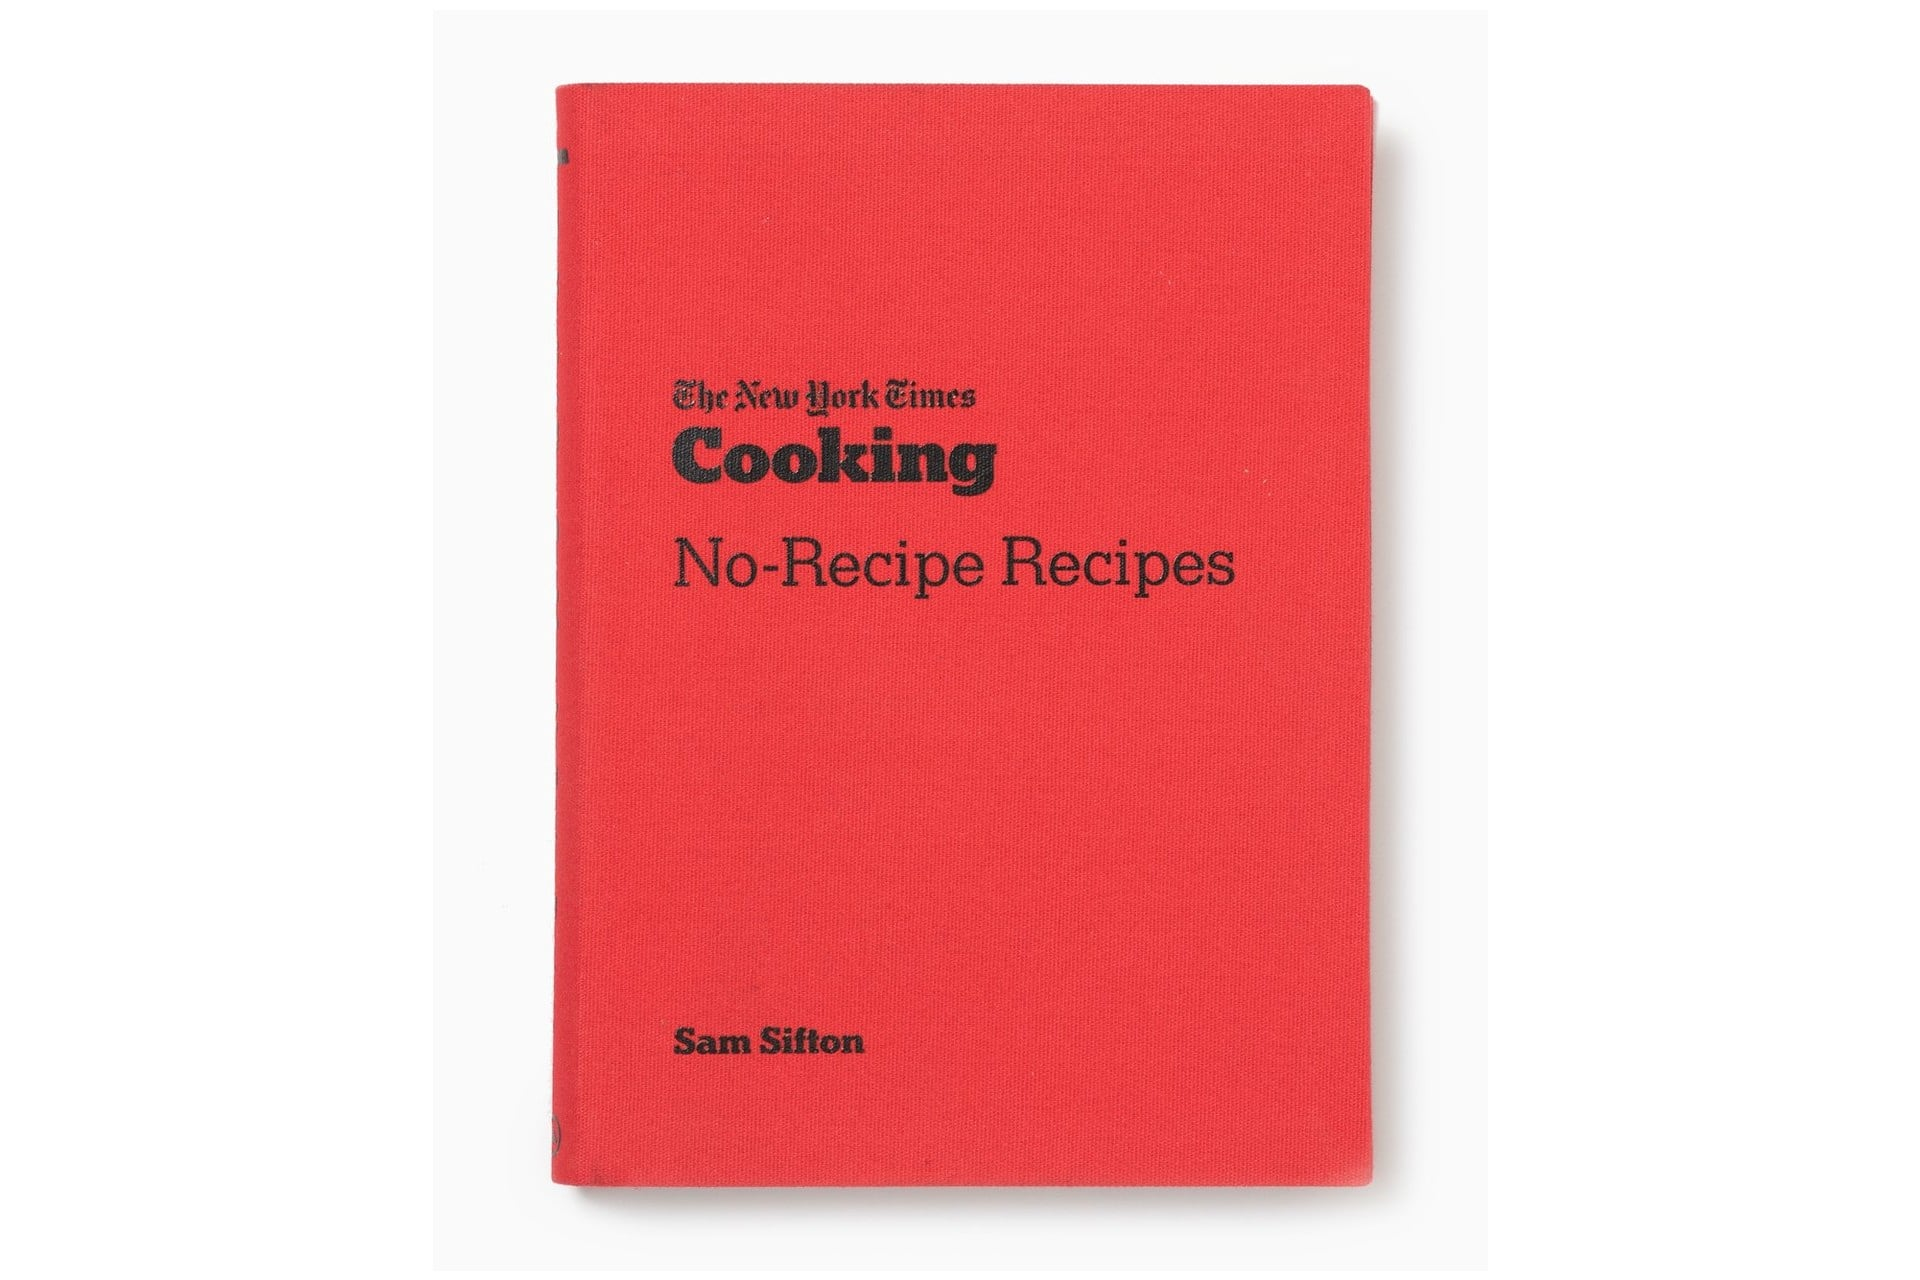 red cookbook cover that say The New York Times Cooking No-Recipe Recipes by Sam Sifton